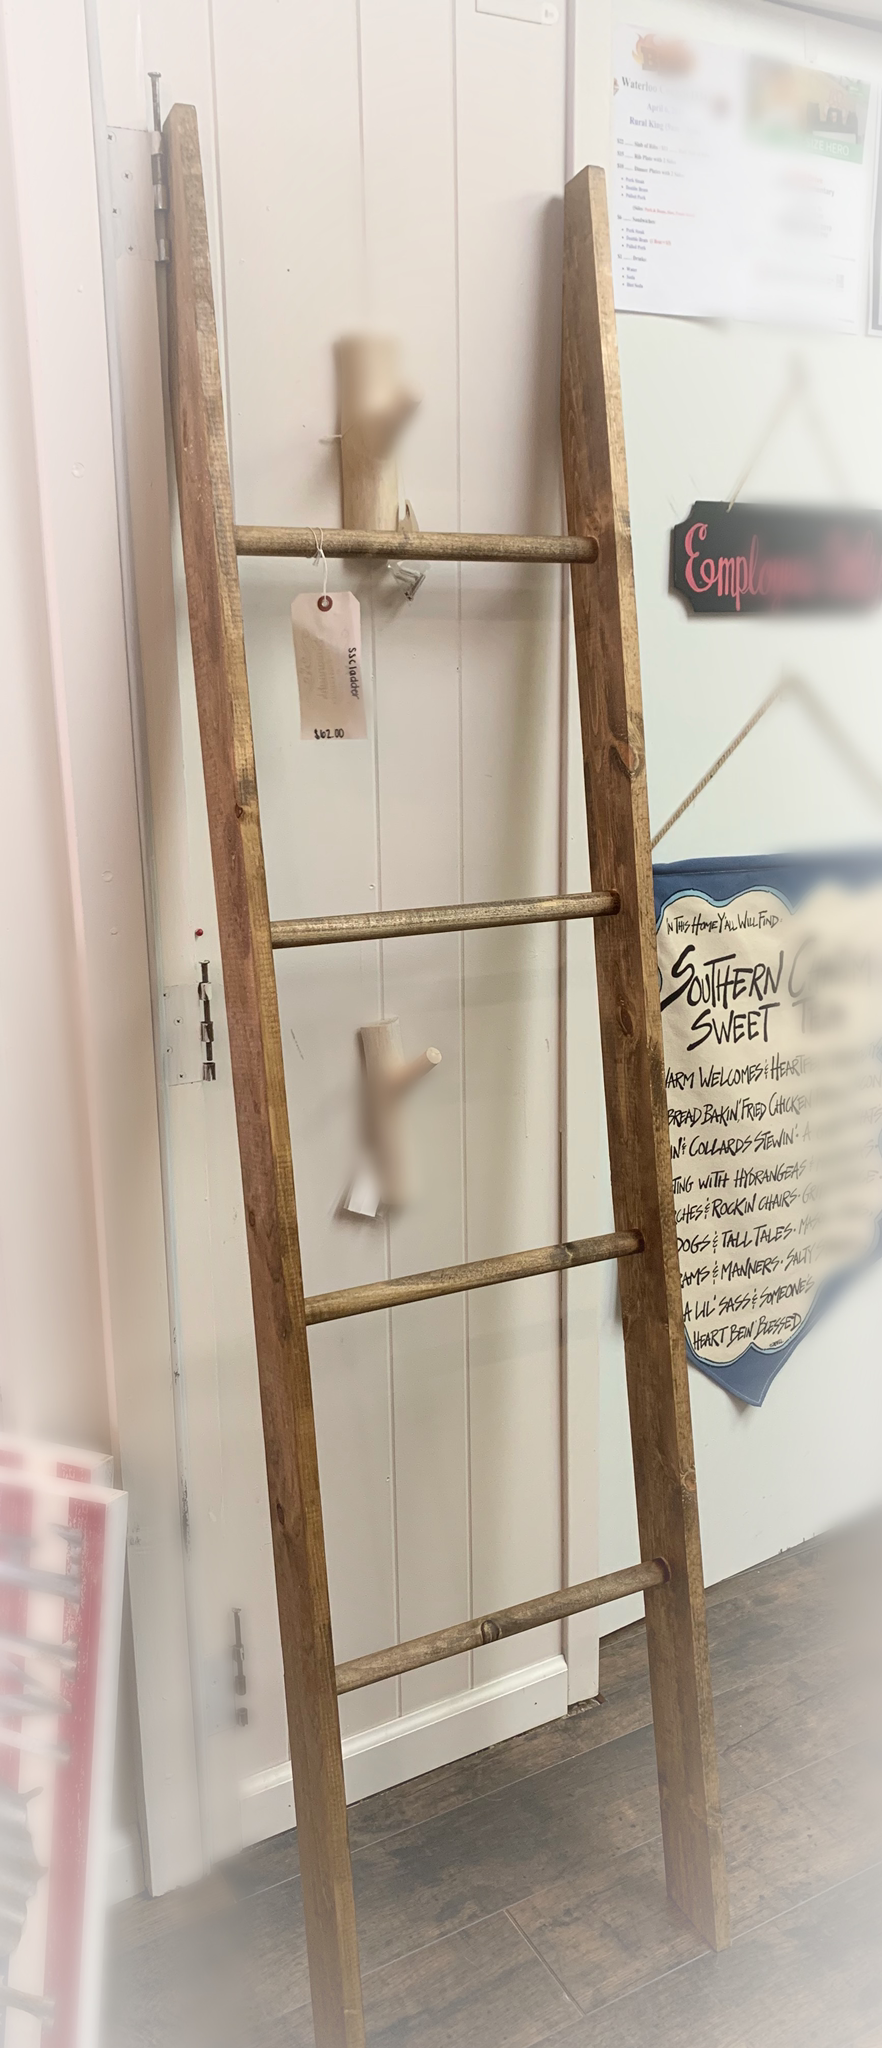 Wooden Ladder Blanket Holder sscladder